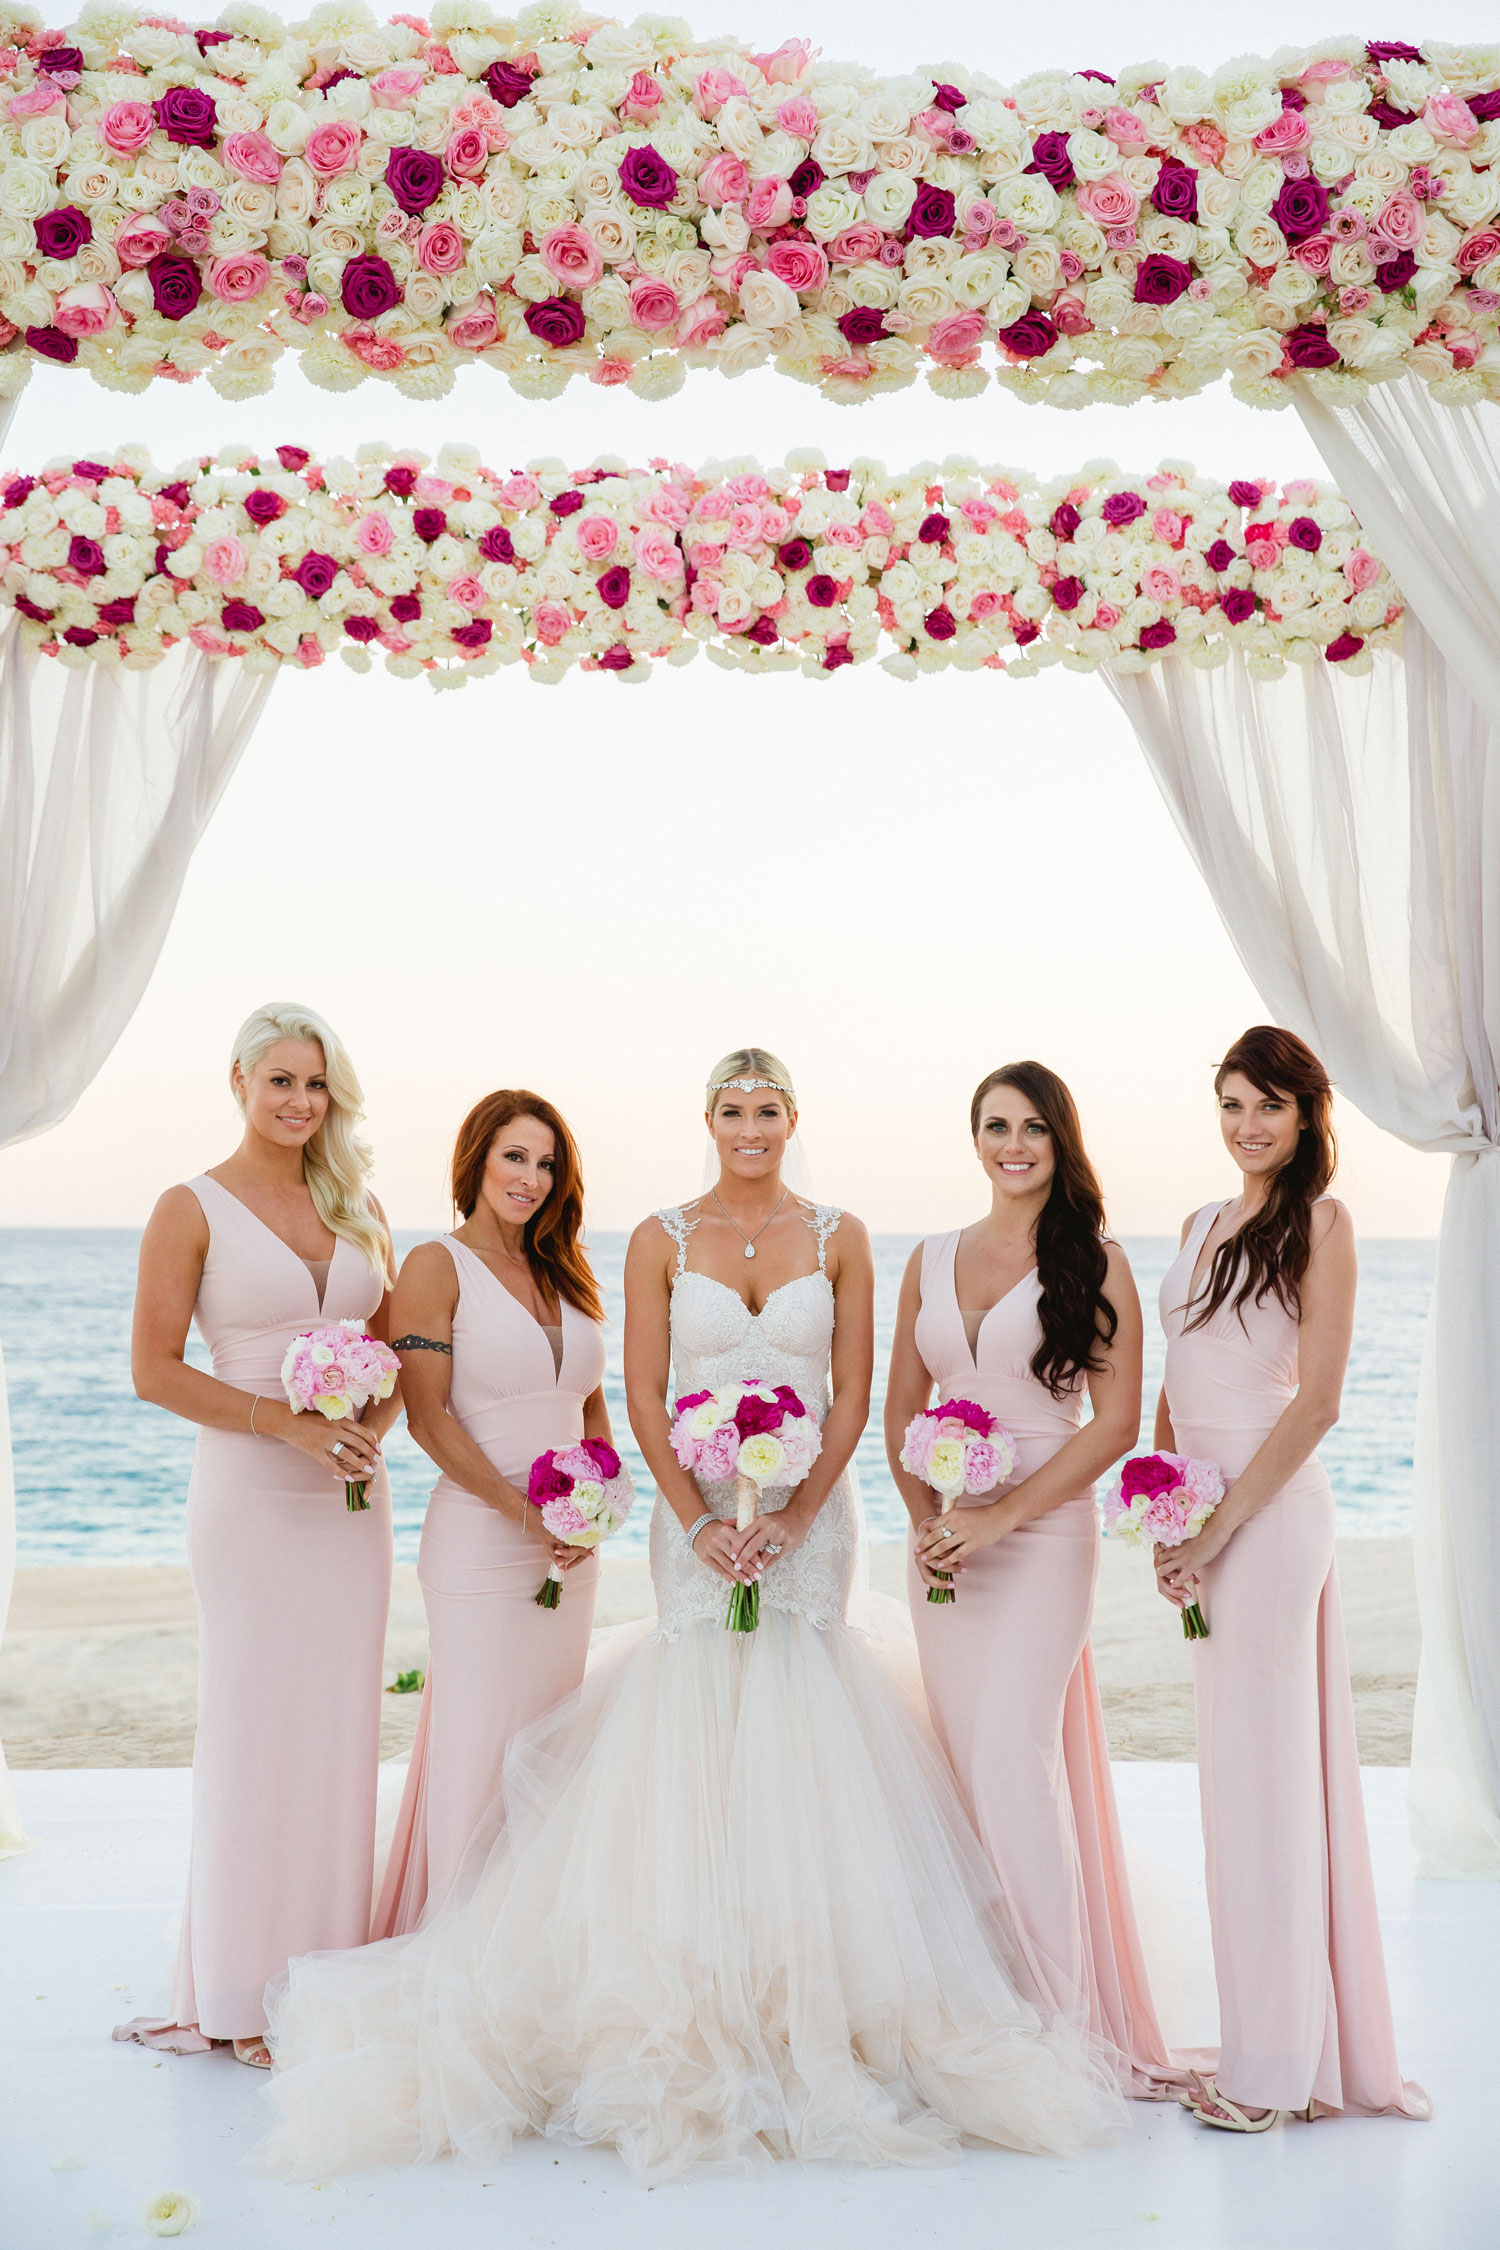 WAGS star Barbie Blank with bridesmaids for destination wedding to Sheldon Souray in Mexico